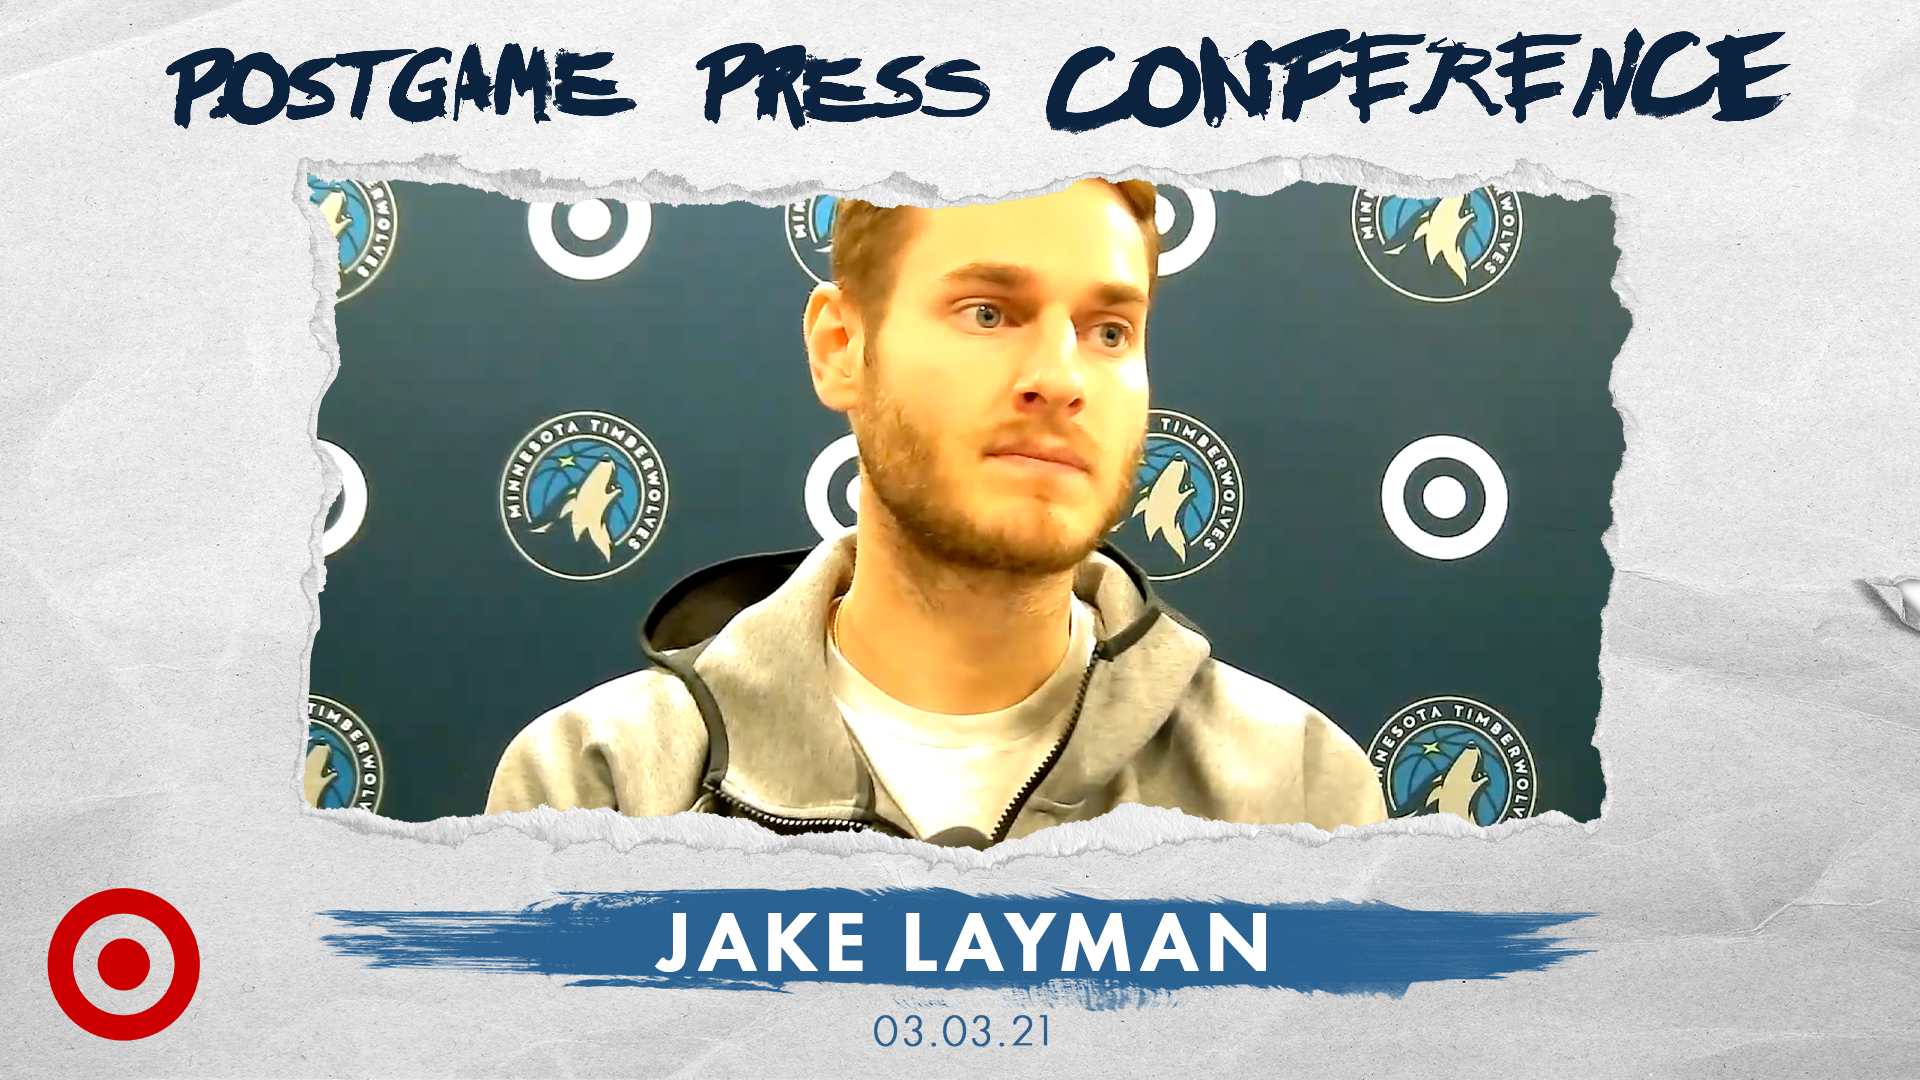 Jake Layman Postgame Press Conference - March 3, 2021